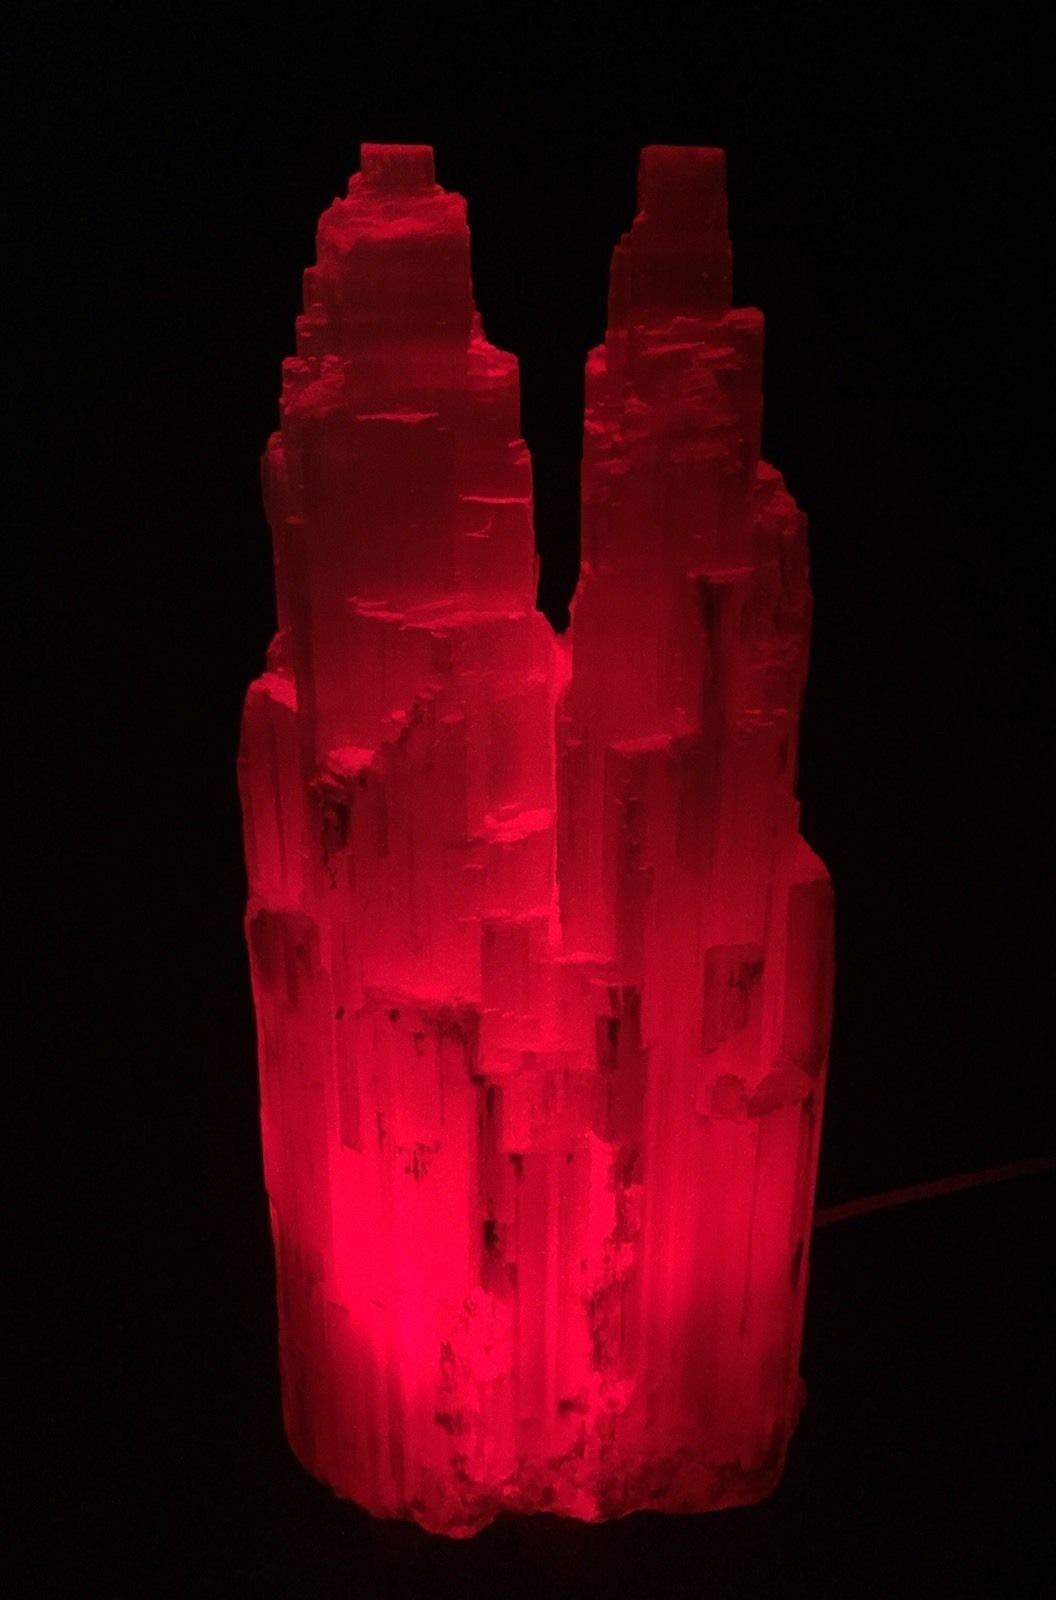 Large Selenite Lamp W/Cord Red LED Bulb Selenite Crystal Tower Two Point Double.Natural Crystals & Rocks for Cabbing, Cutting, Lapidary, Tumbling, Polishing, Wire Wrapping, Wicca by JumpingLight (Image #4)